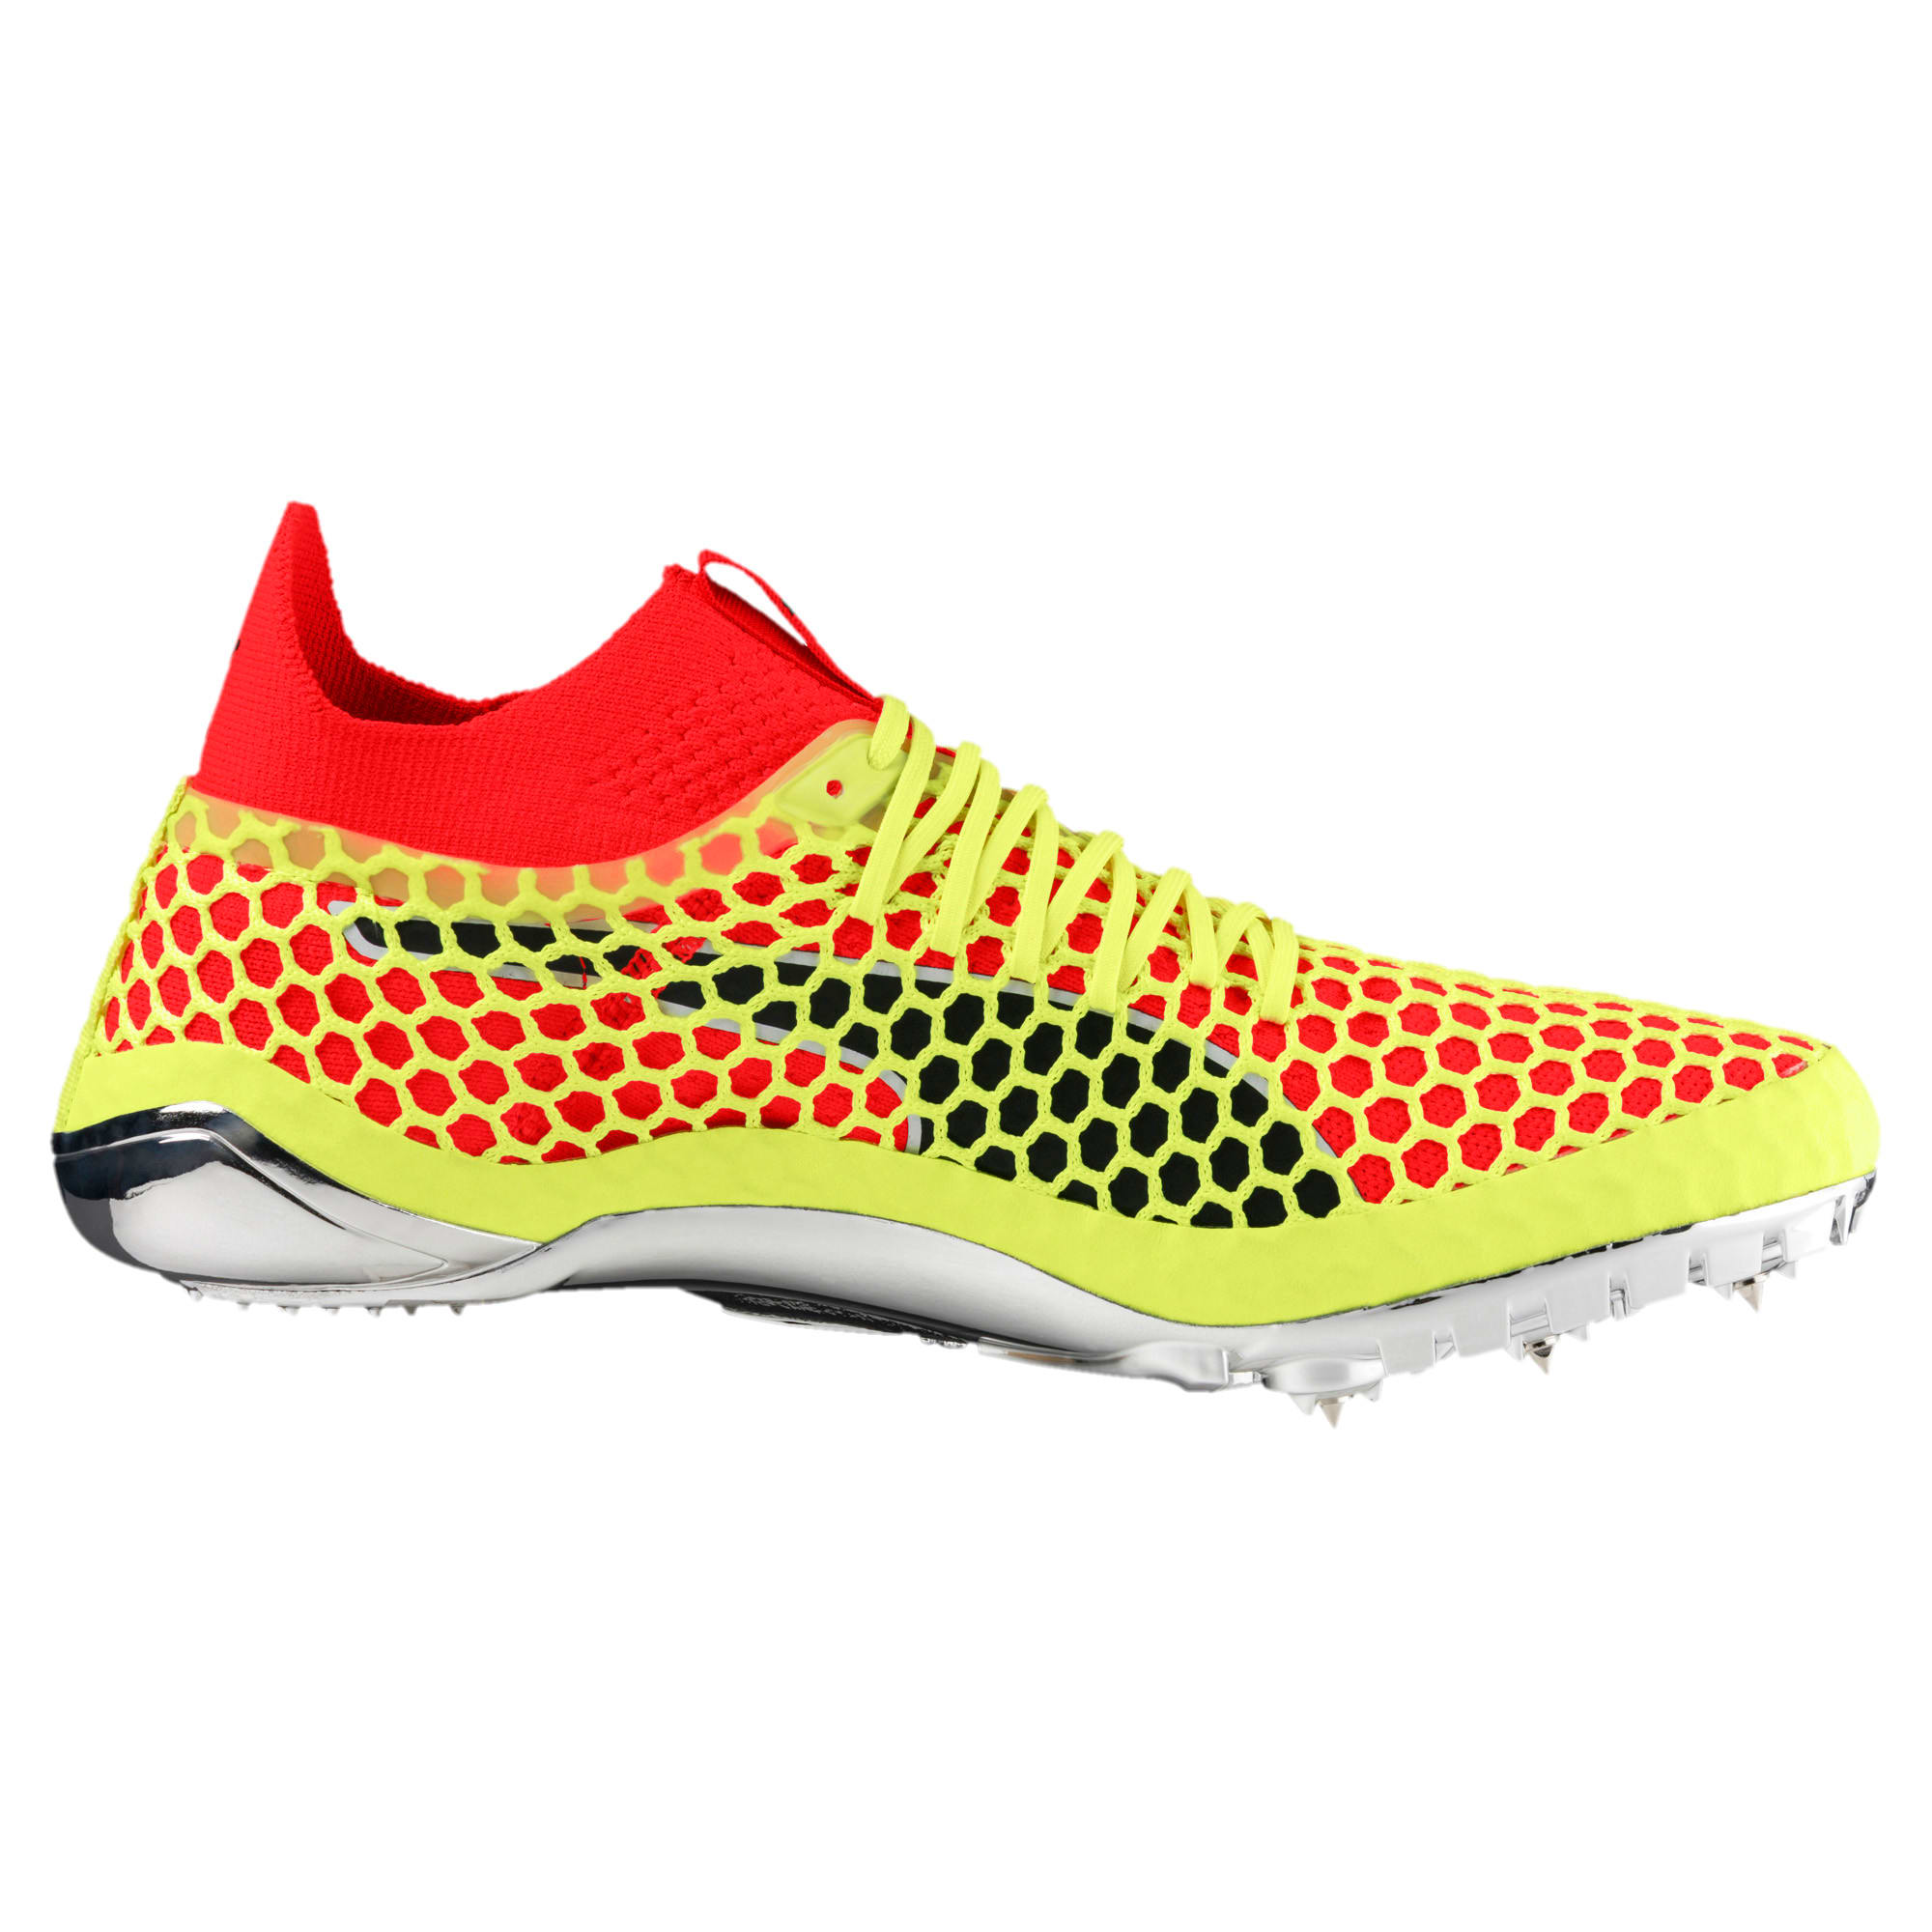 Thumbnail 3 of evoSPEED NETFIT Sprint Running Shoes, Fizzy Yellow-Red Blast-Black, medium